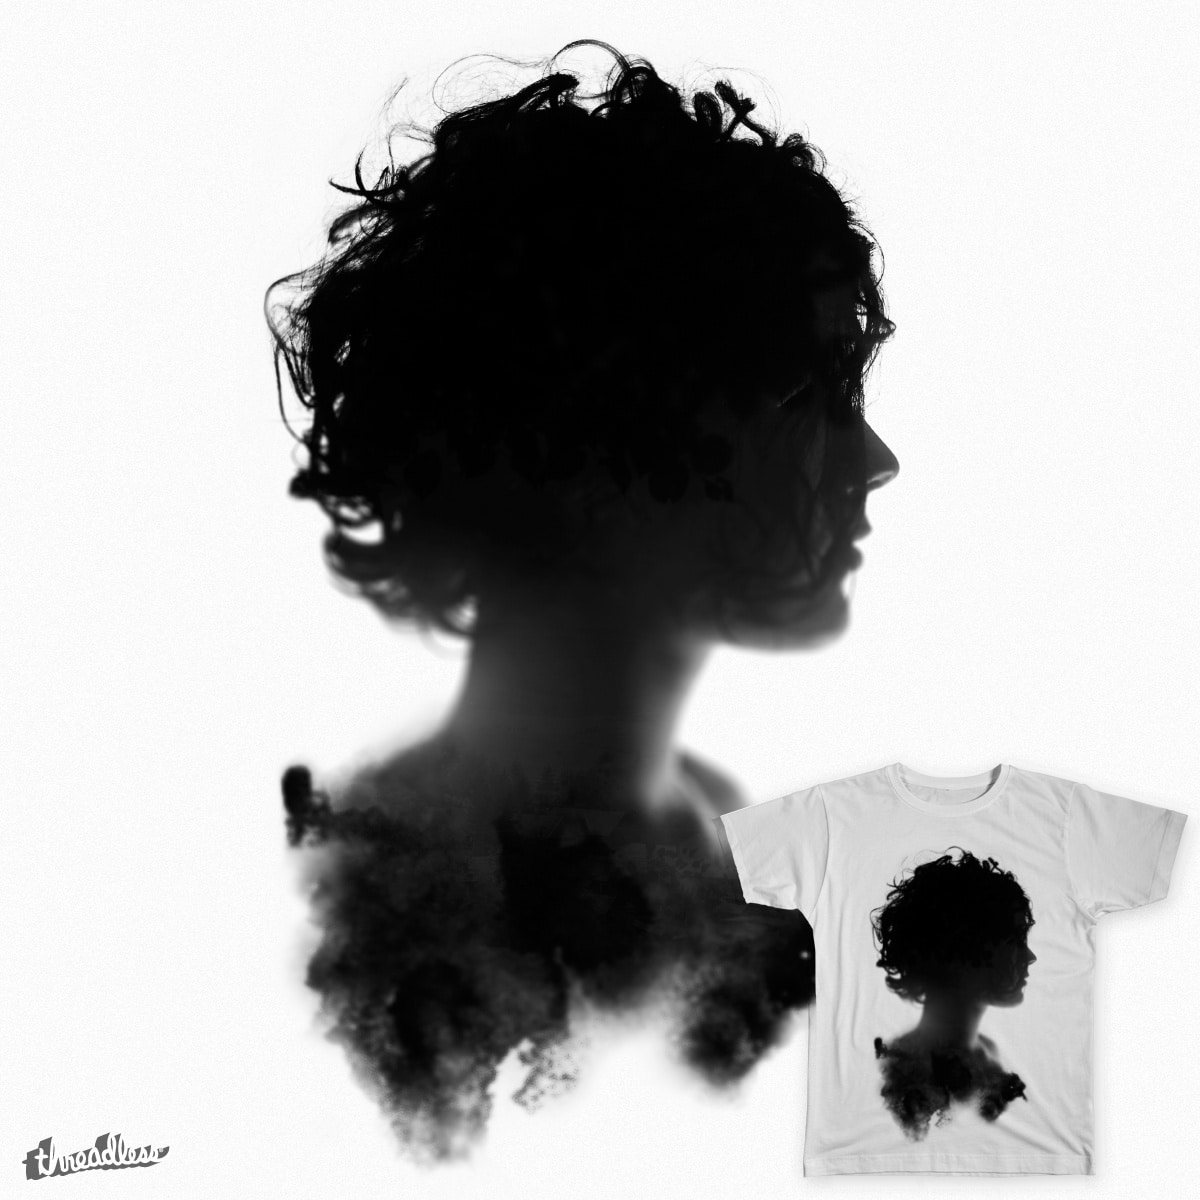 Silhouette by tiborsmd on Threadless